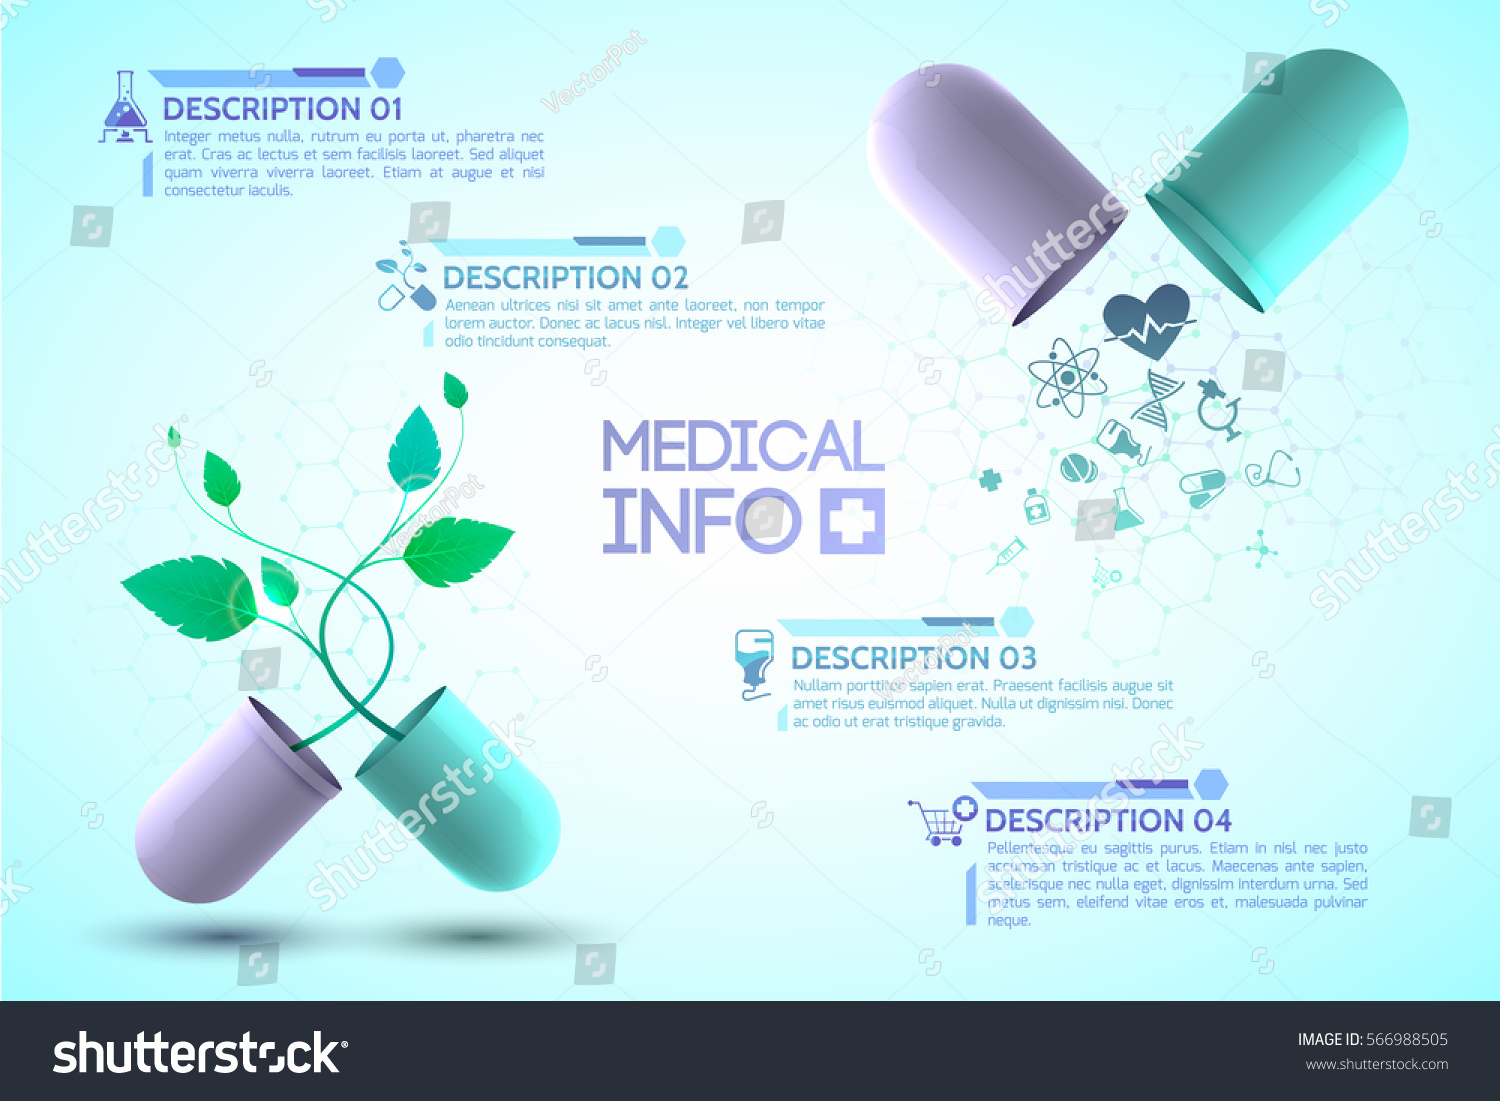 Poster design medical - Medical Info Poster With Medication And Treatment Symbols Realistic Vector Illustration